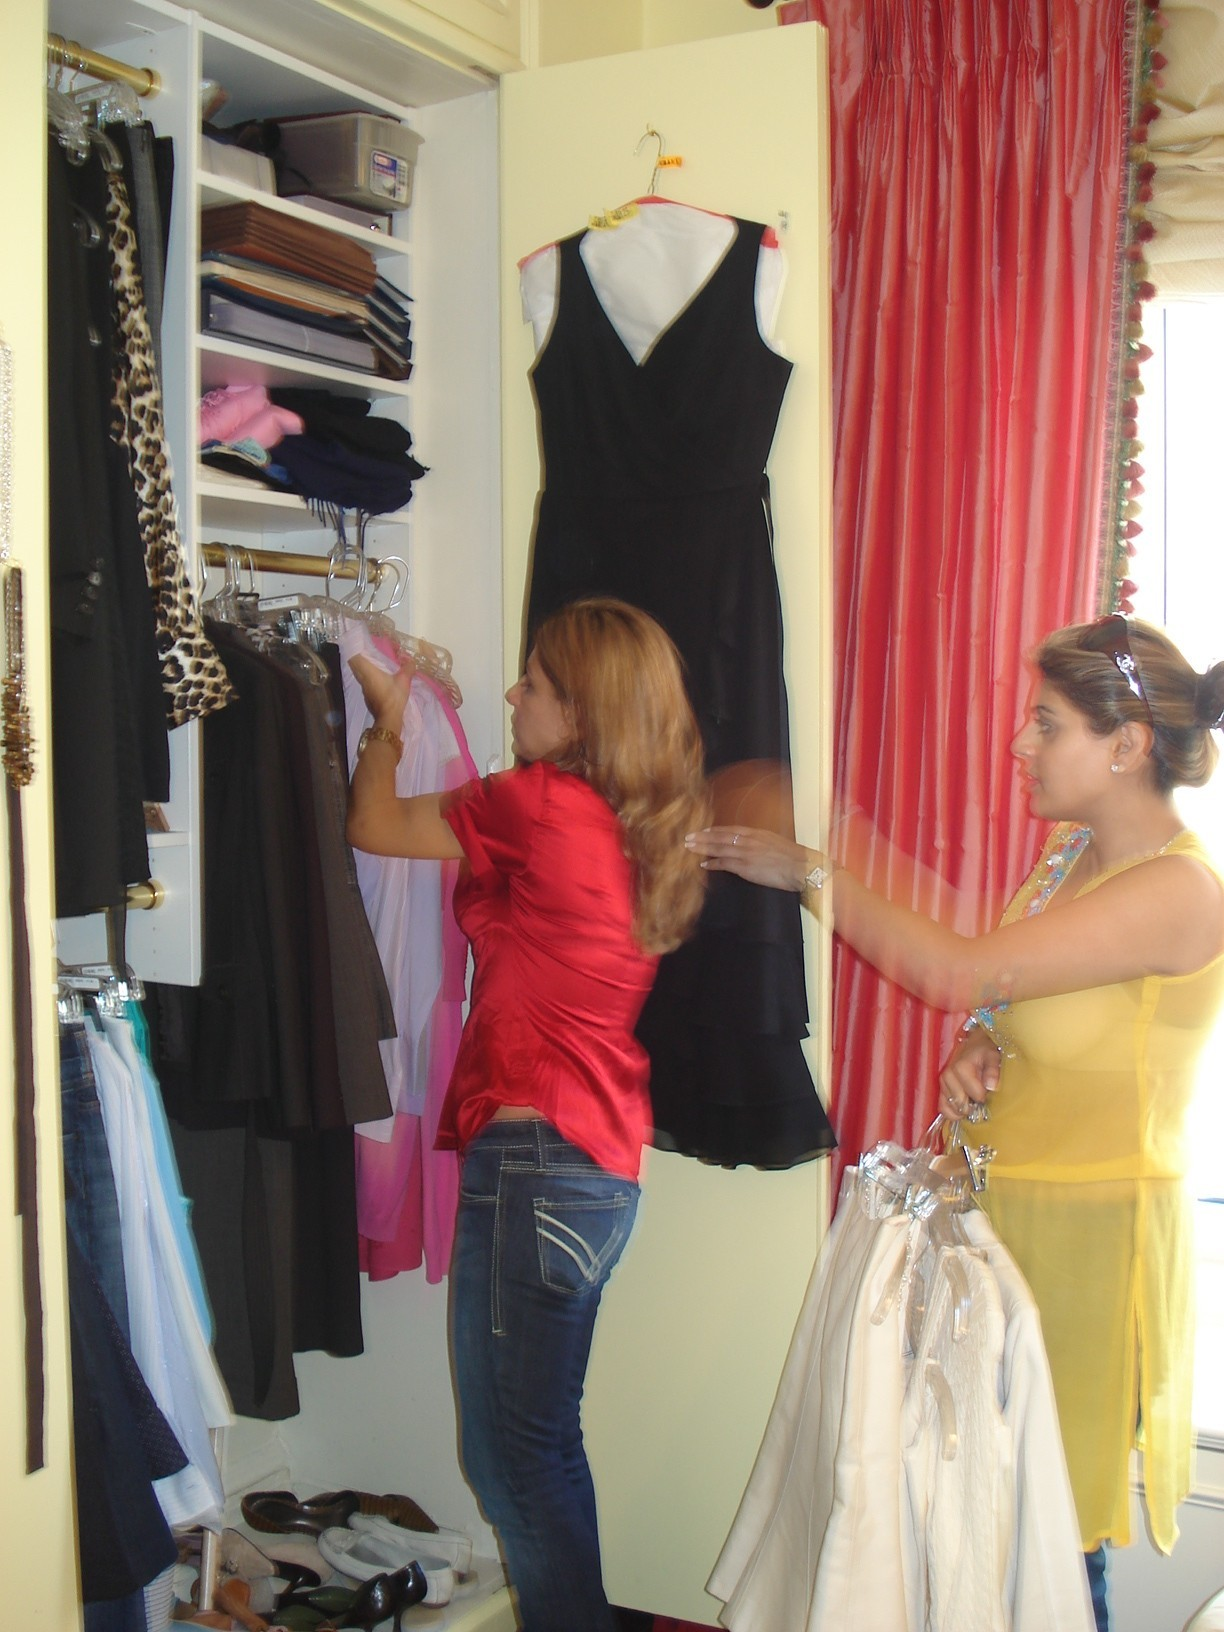 Become a personal shopper sterling style academy blog - Personal shopper blog ...